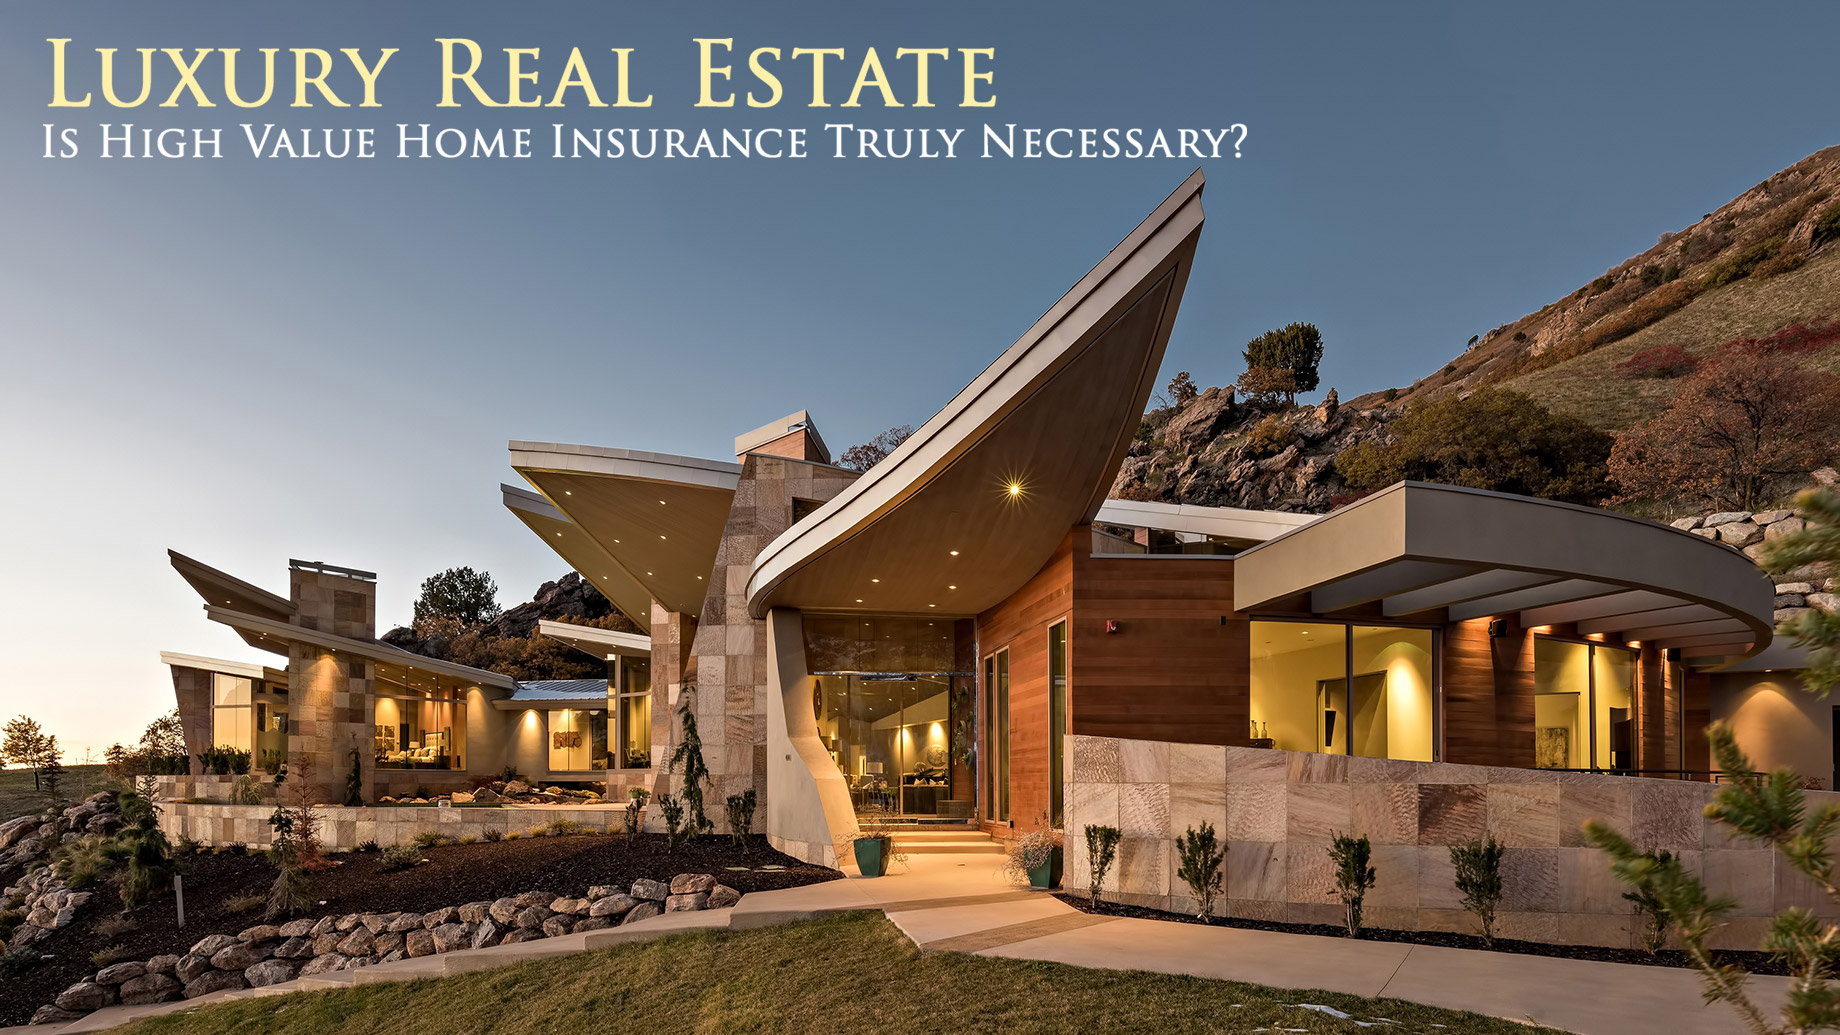 Luxury Real Estate - Is High Value Home Insurance Truly Necessary?